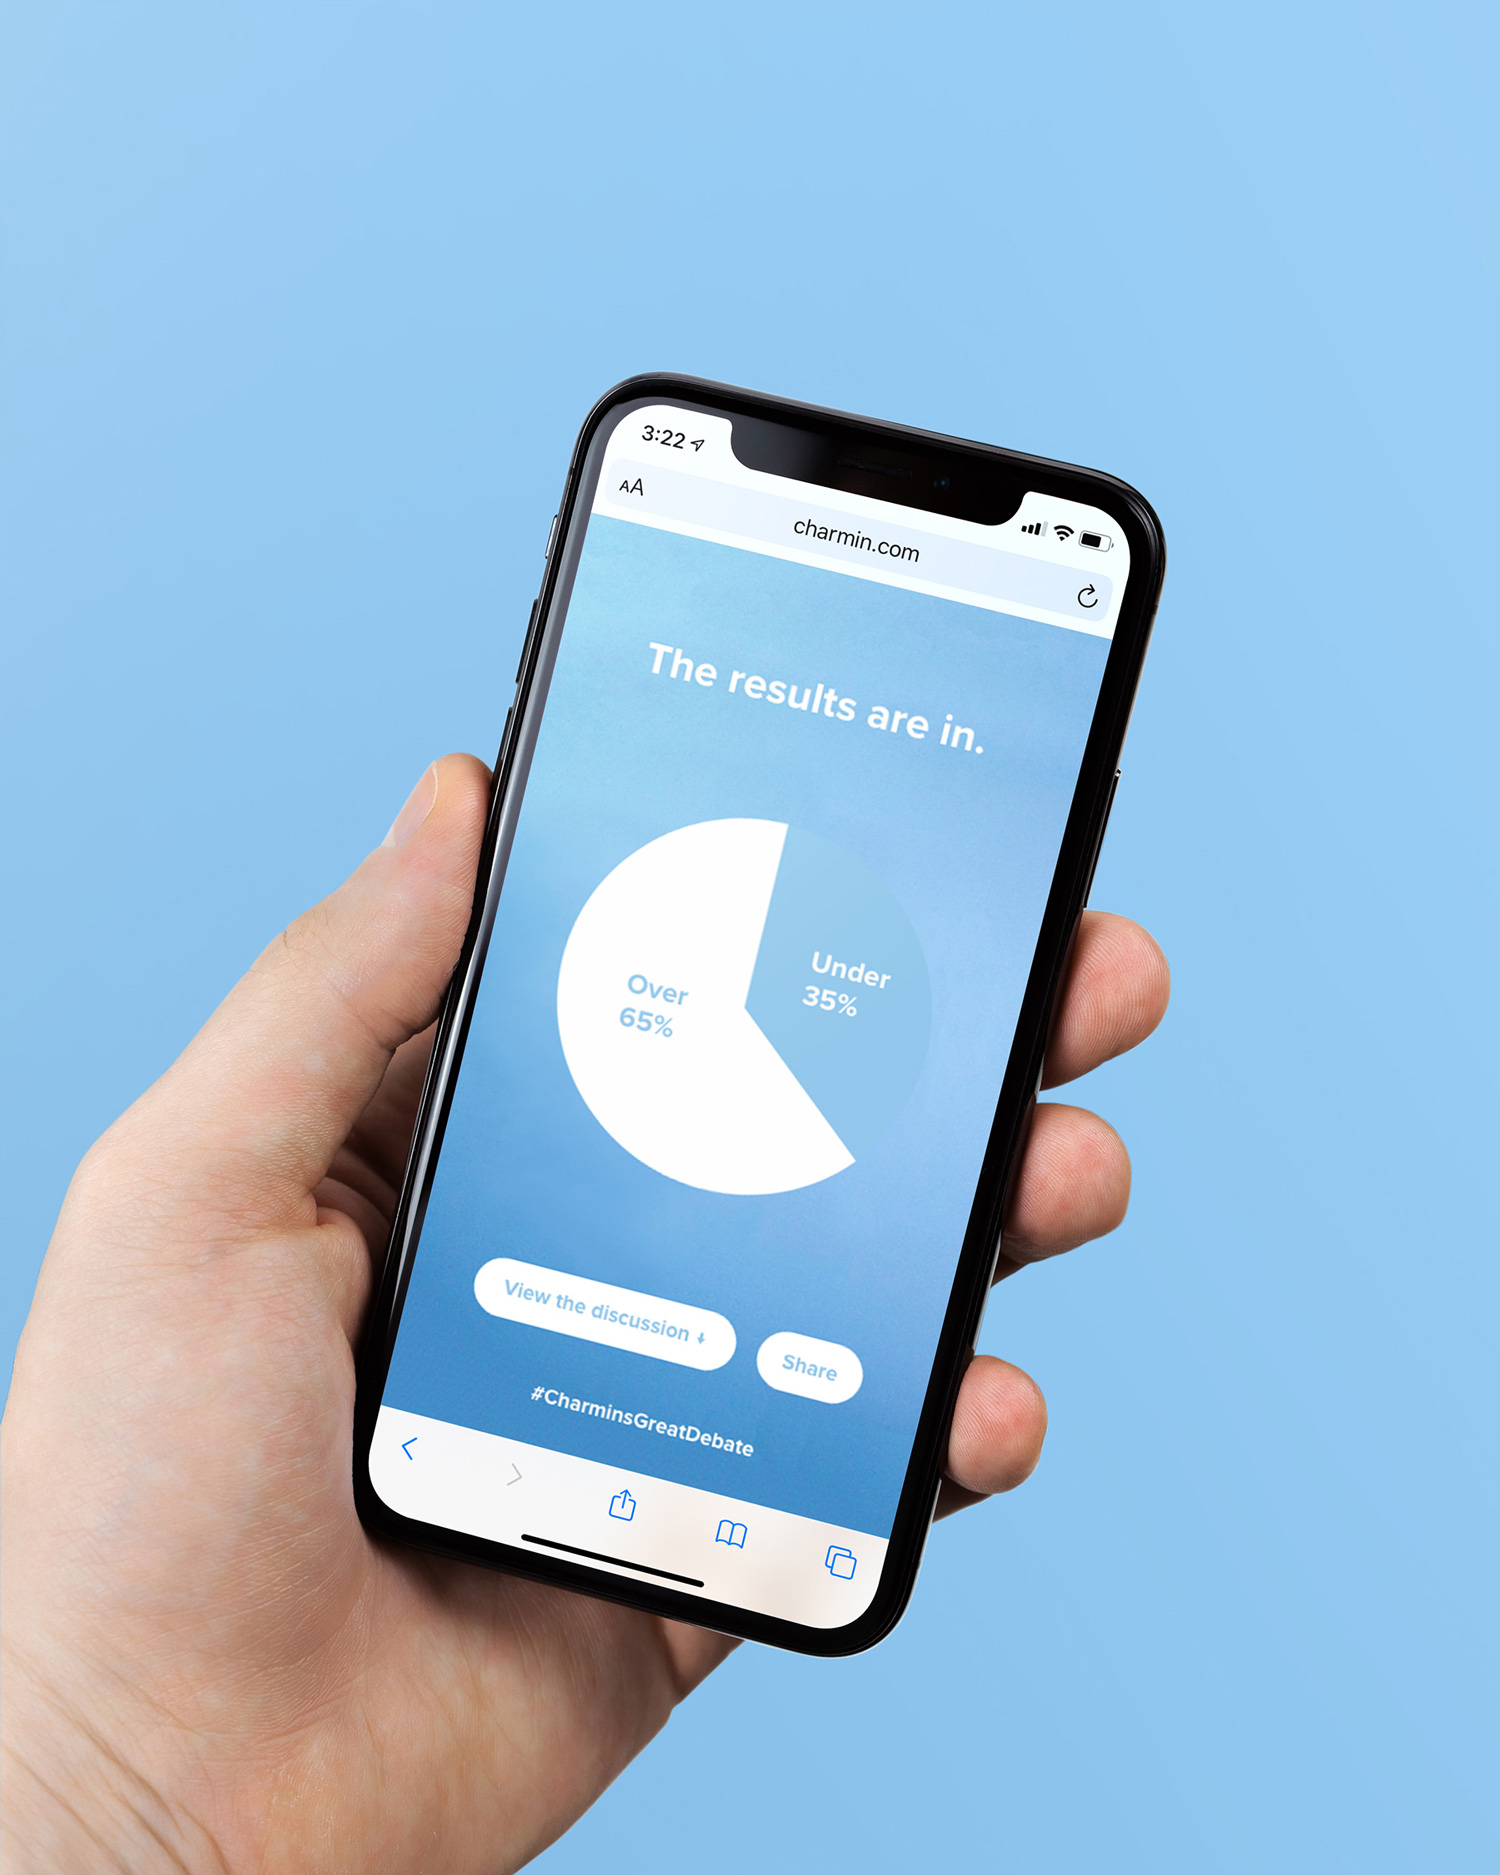 A hand holding a phone that shows the results of Charmin's Great Debate poll, on a blue background